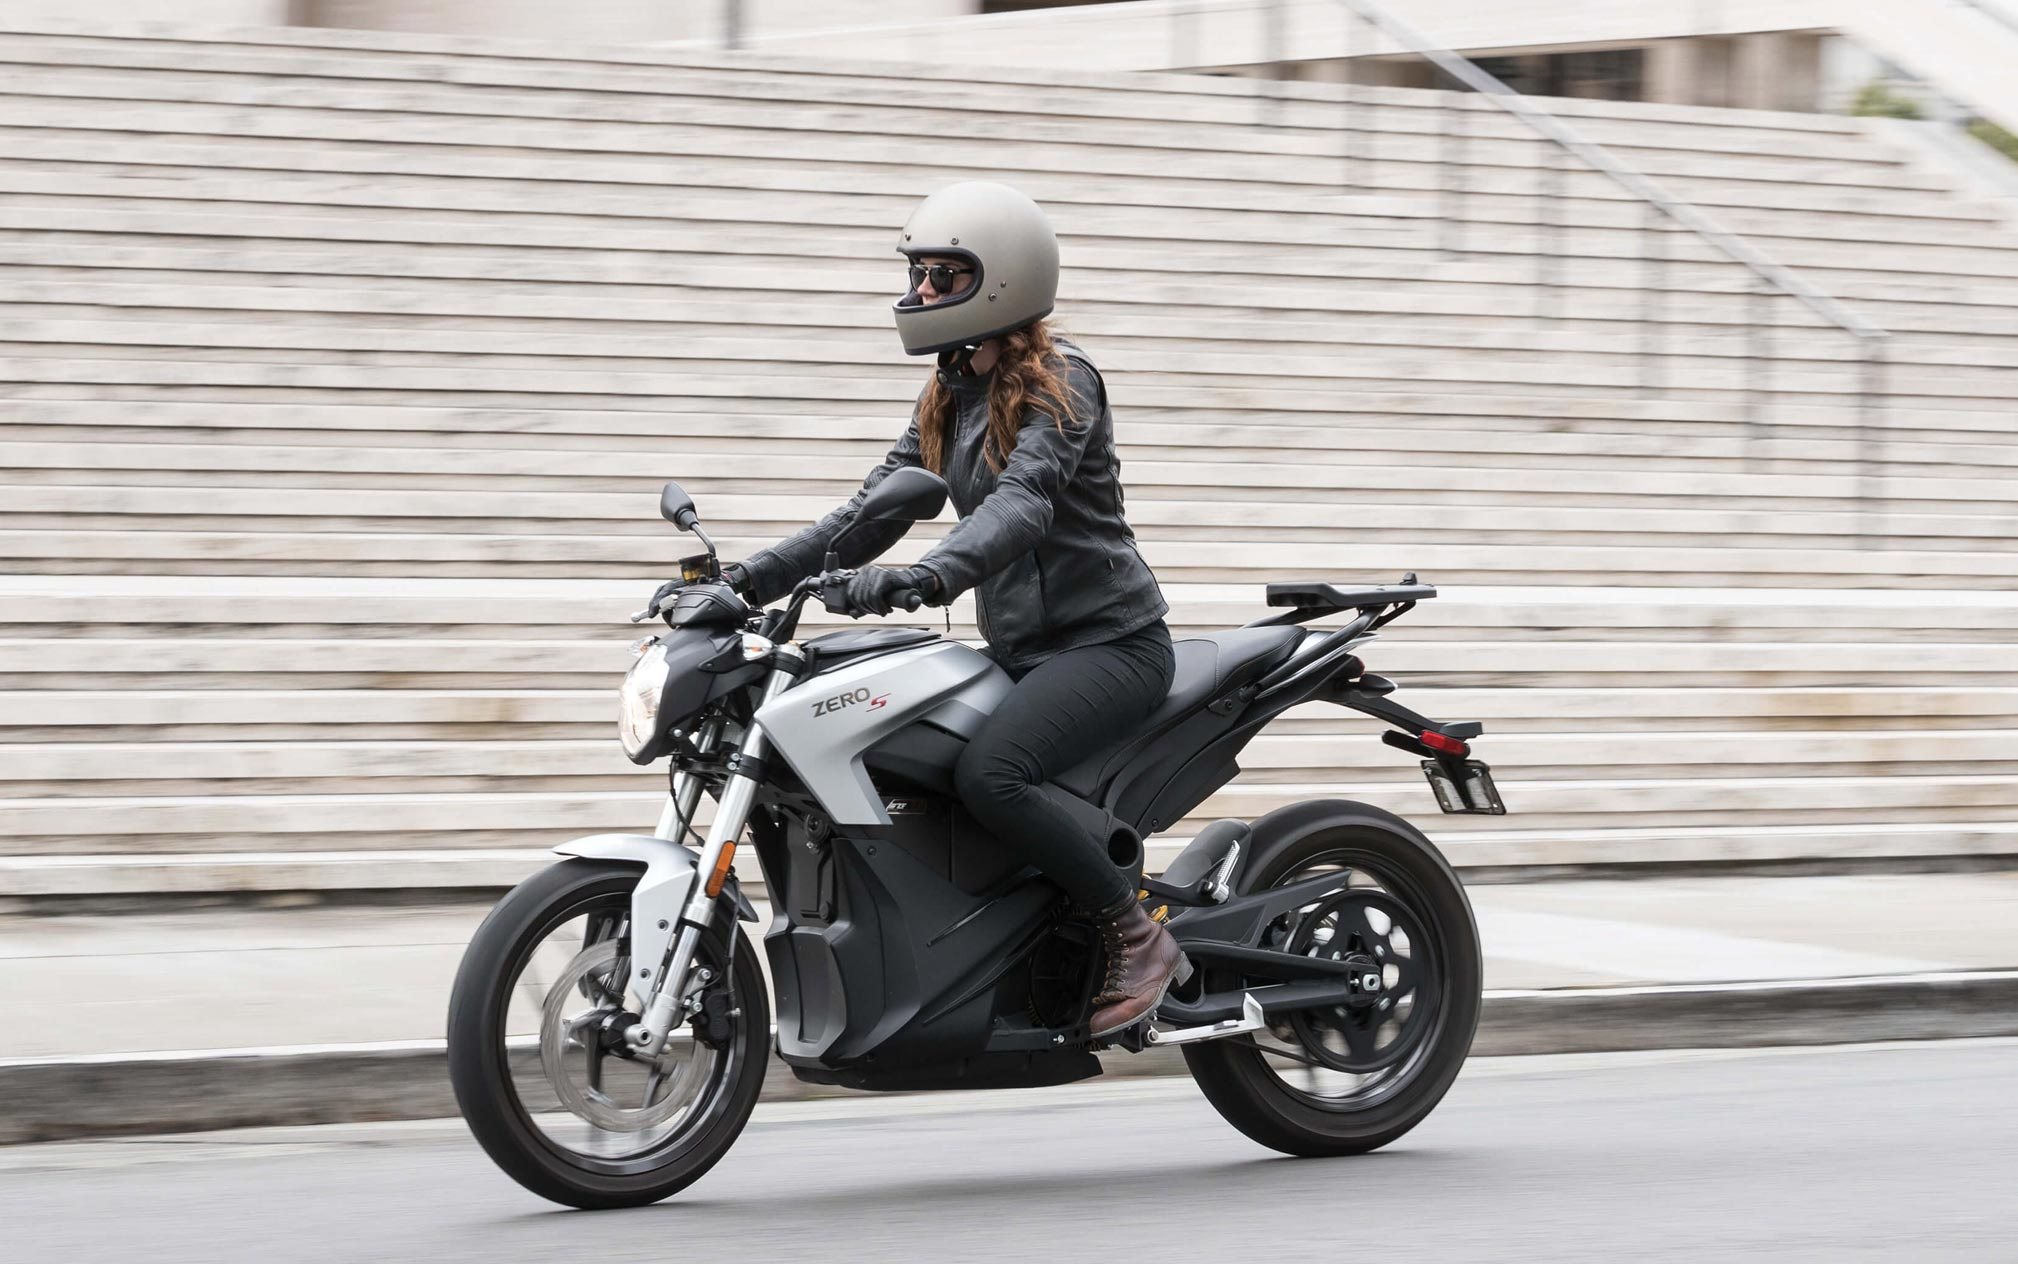 review total motorcycle